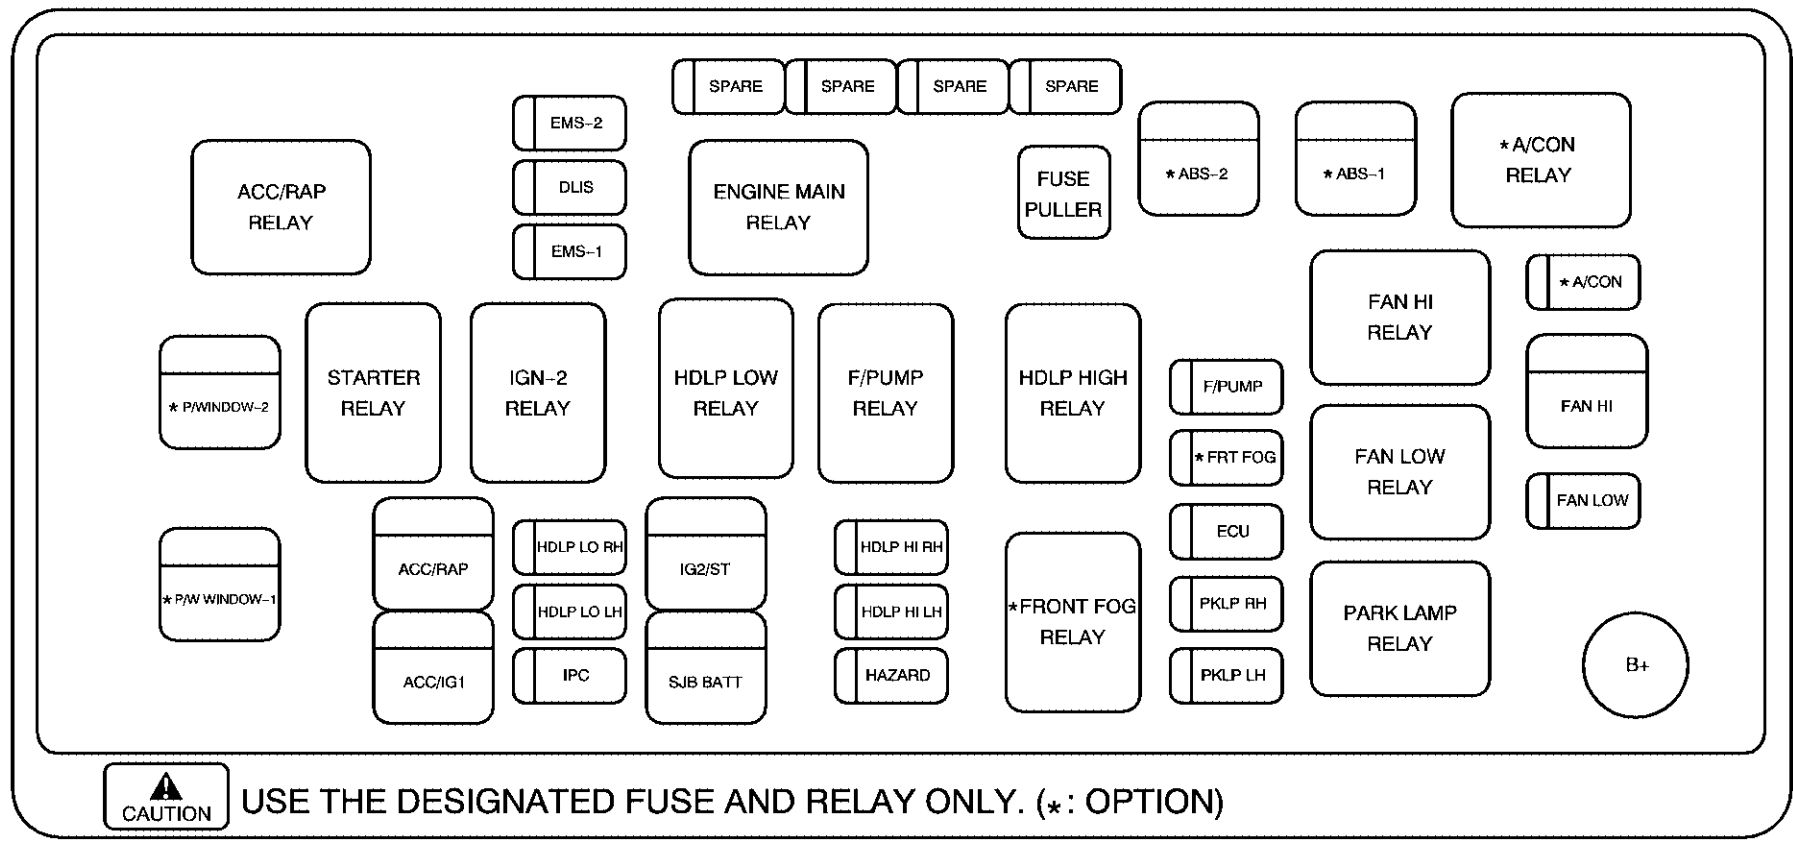 2009 chevy aveo fuse box wiring diagram ops Ford Contour Fuse Box